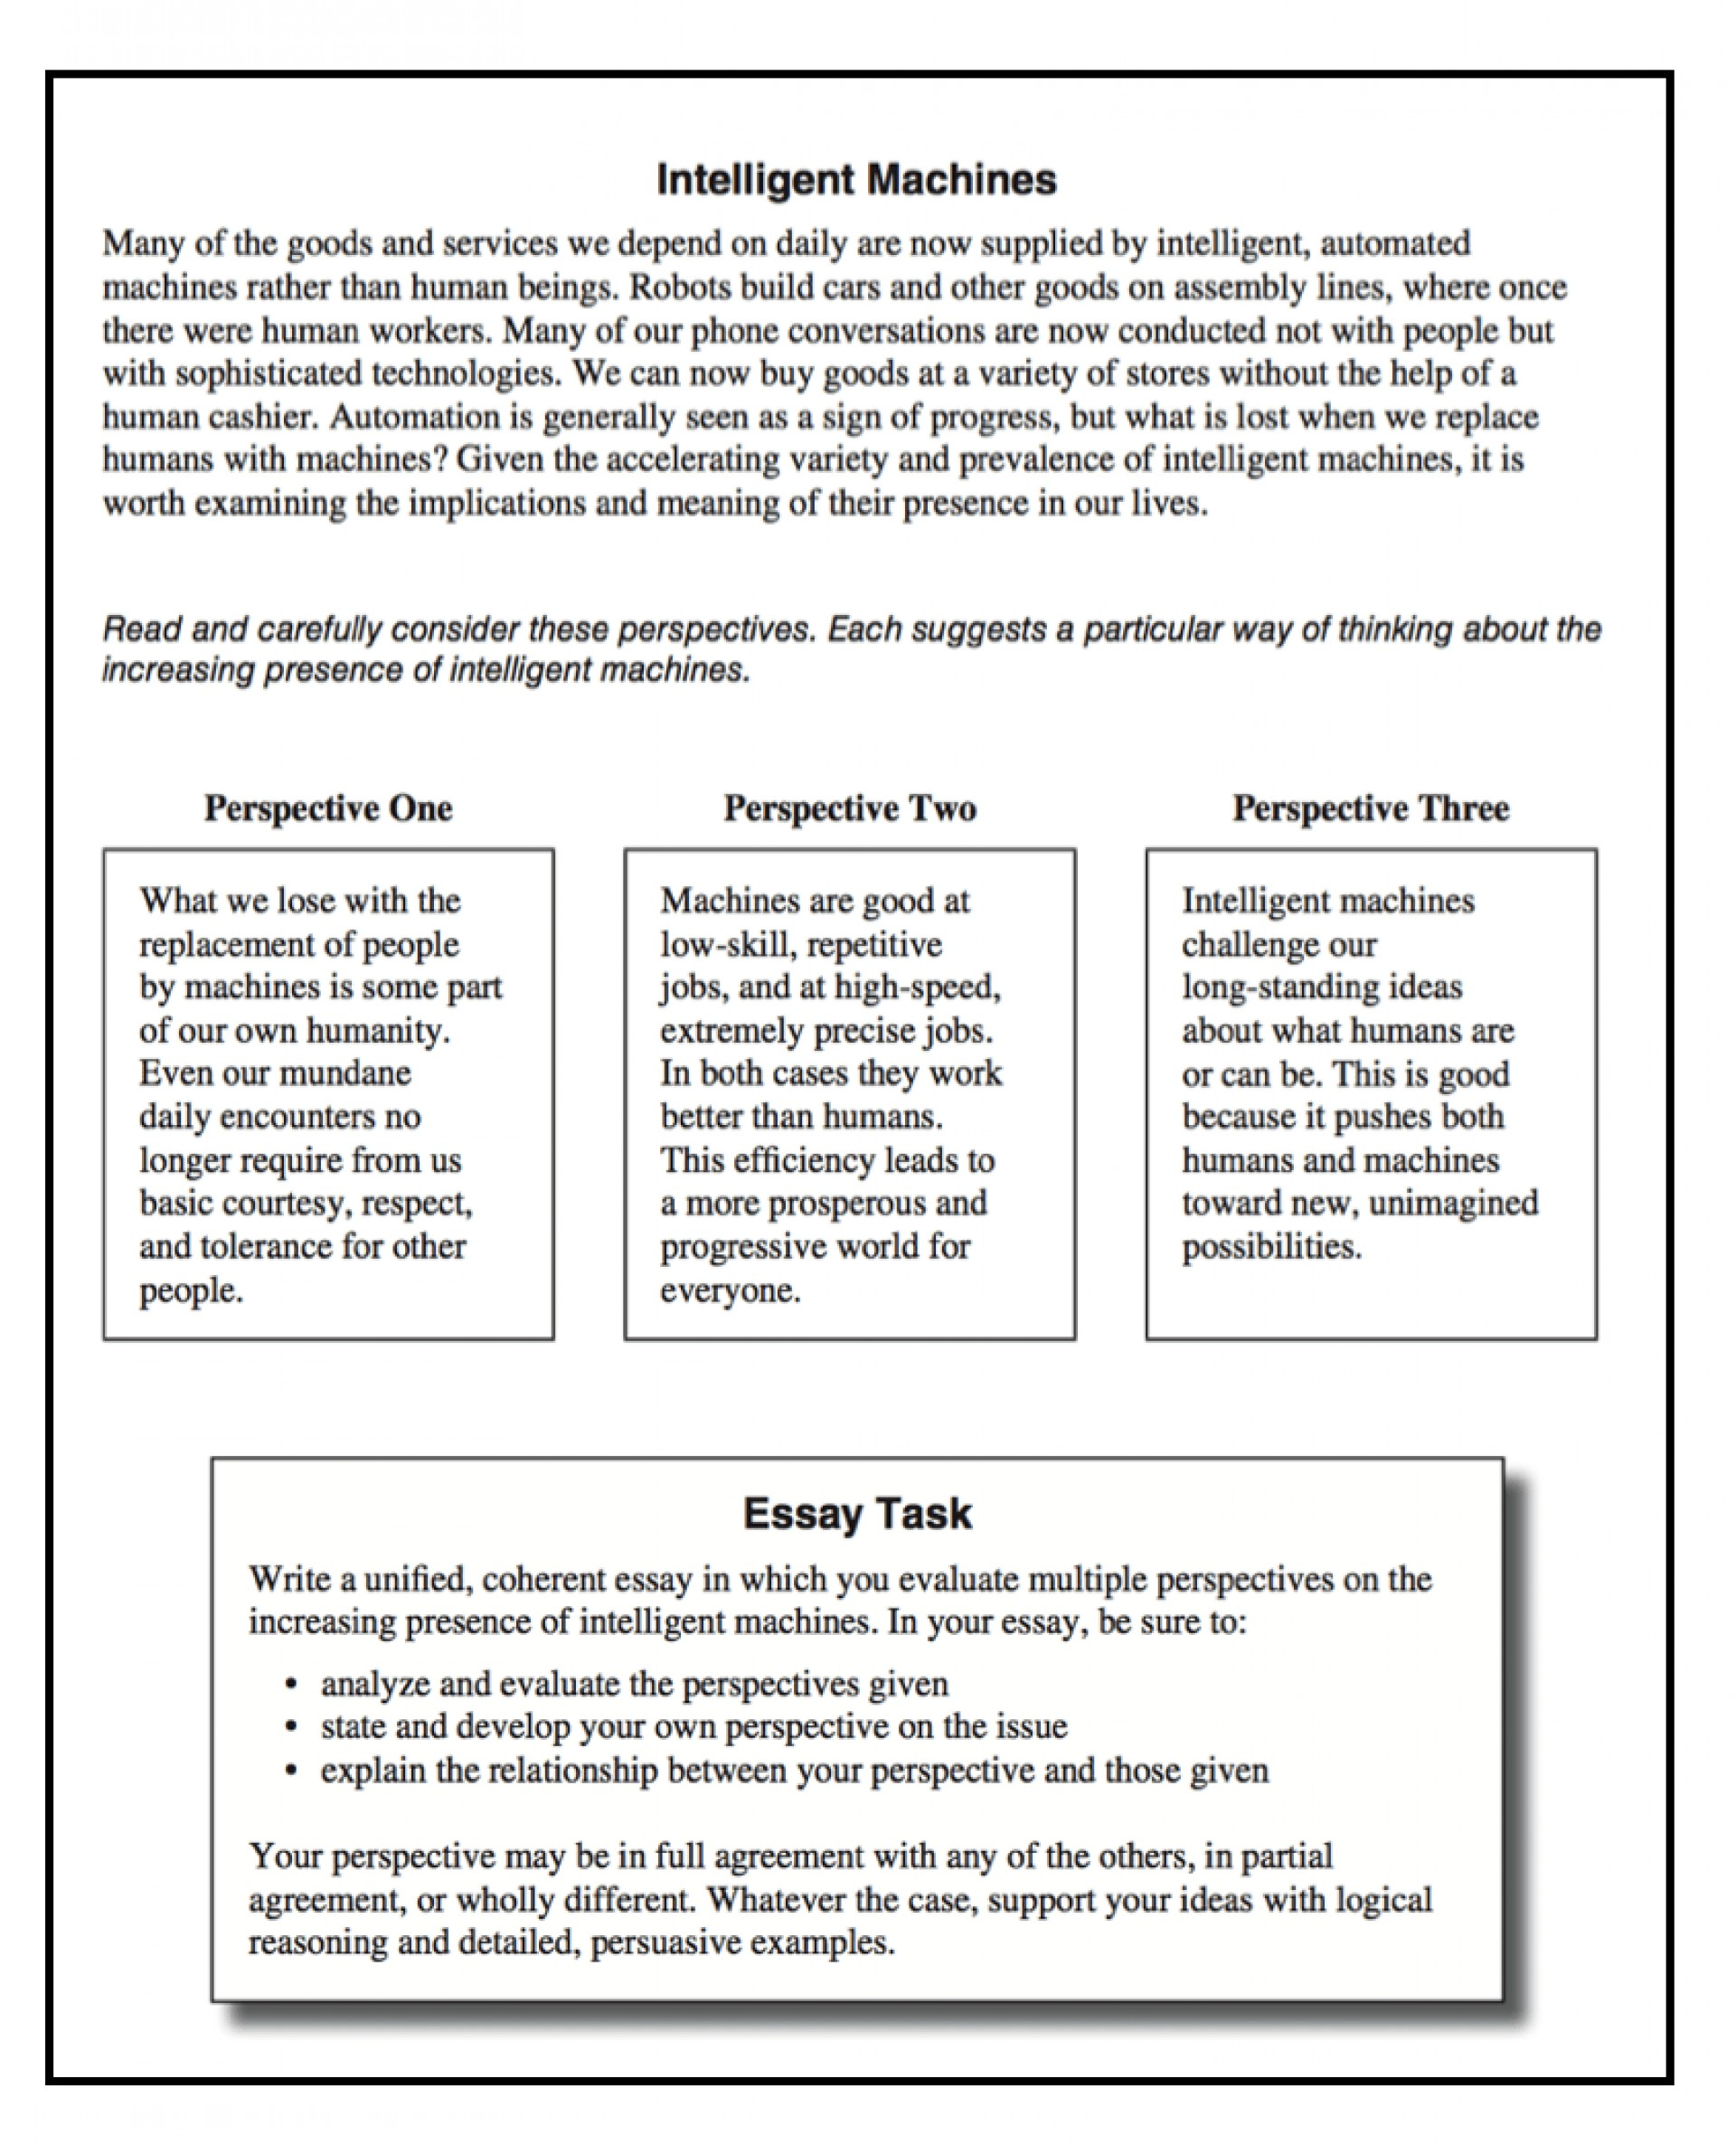 004 Sat Essay Example How To Write Faster Screen Shot Prepscholar Examples Pdf Formula Step Awesome 12 1920